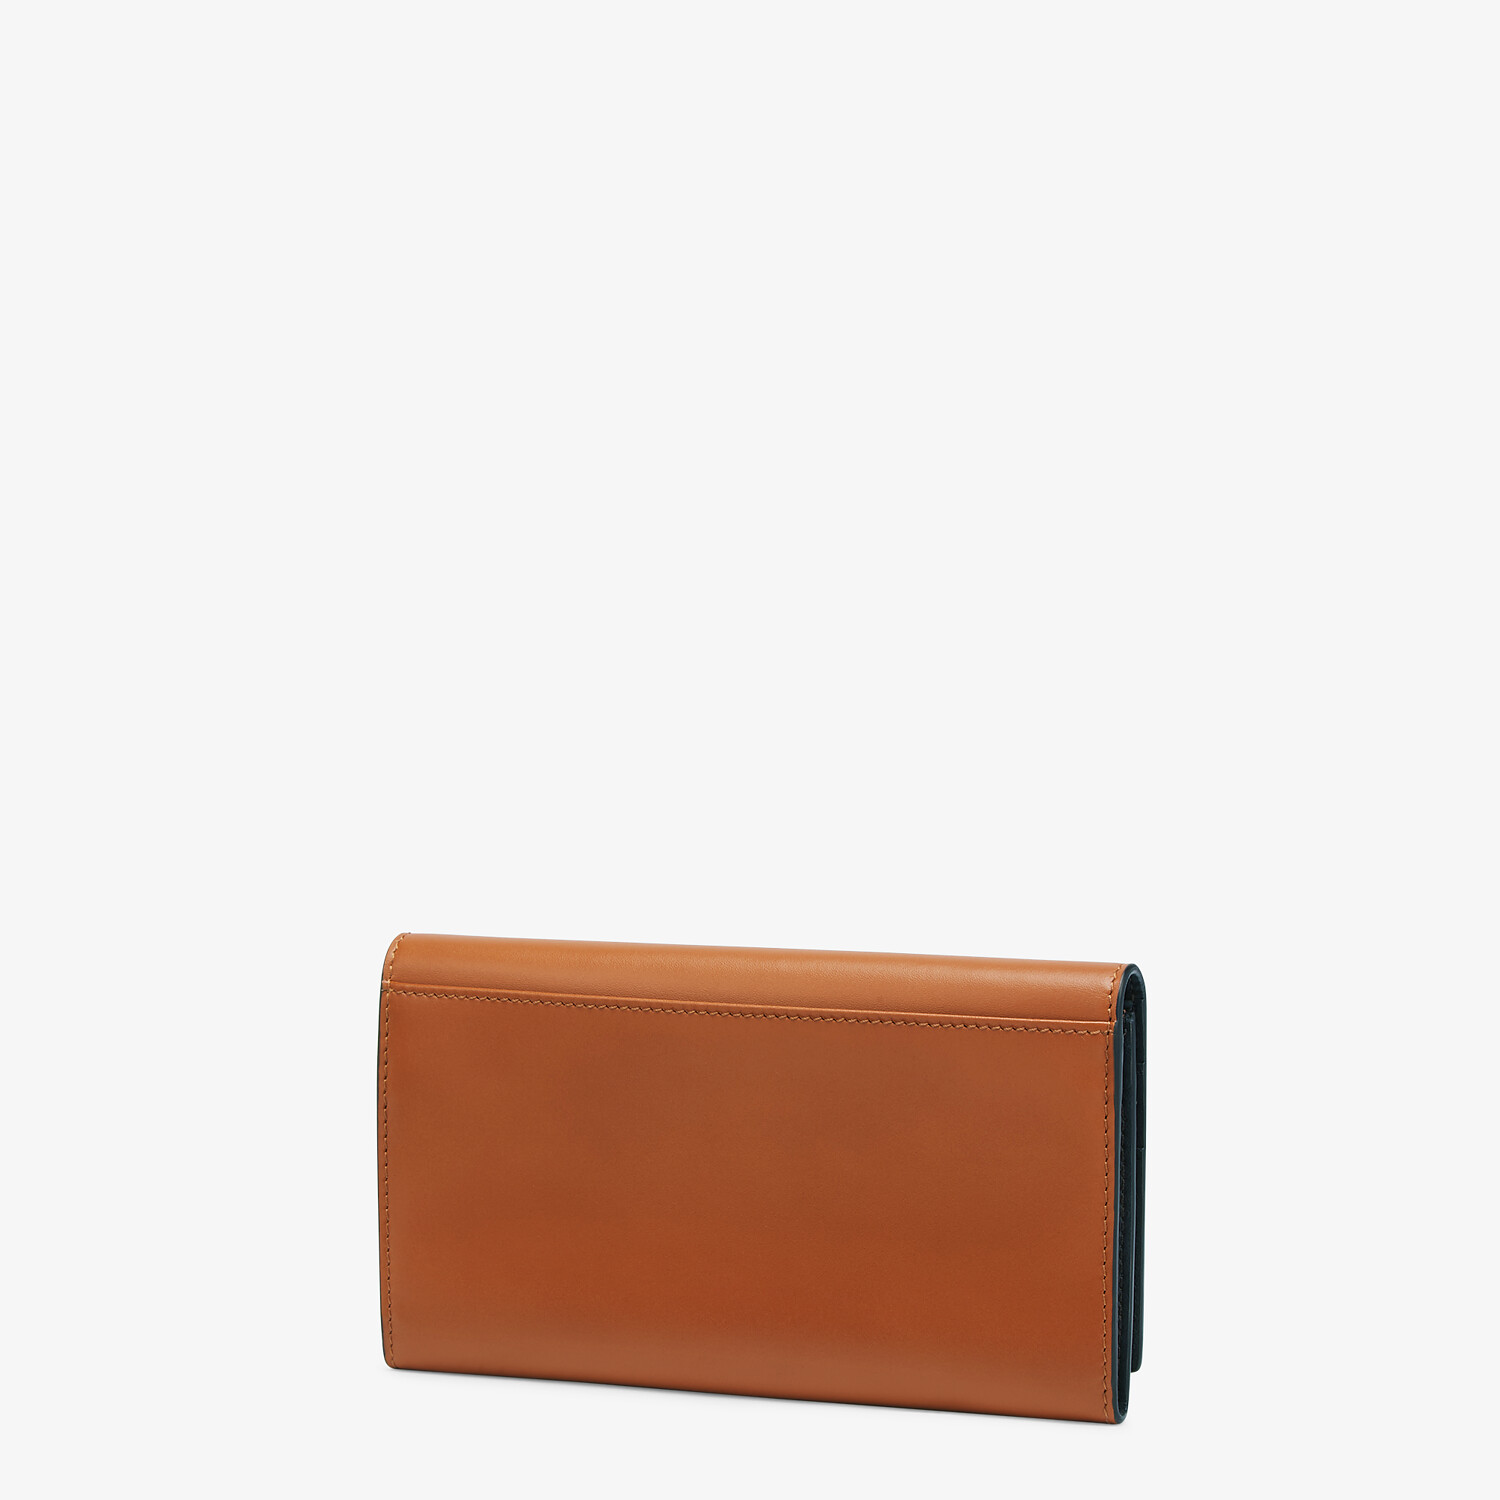 FENDI CONTINENTAL - Brown leather wallet - view 2 detail